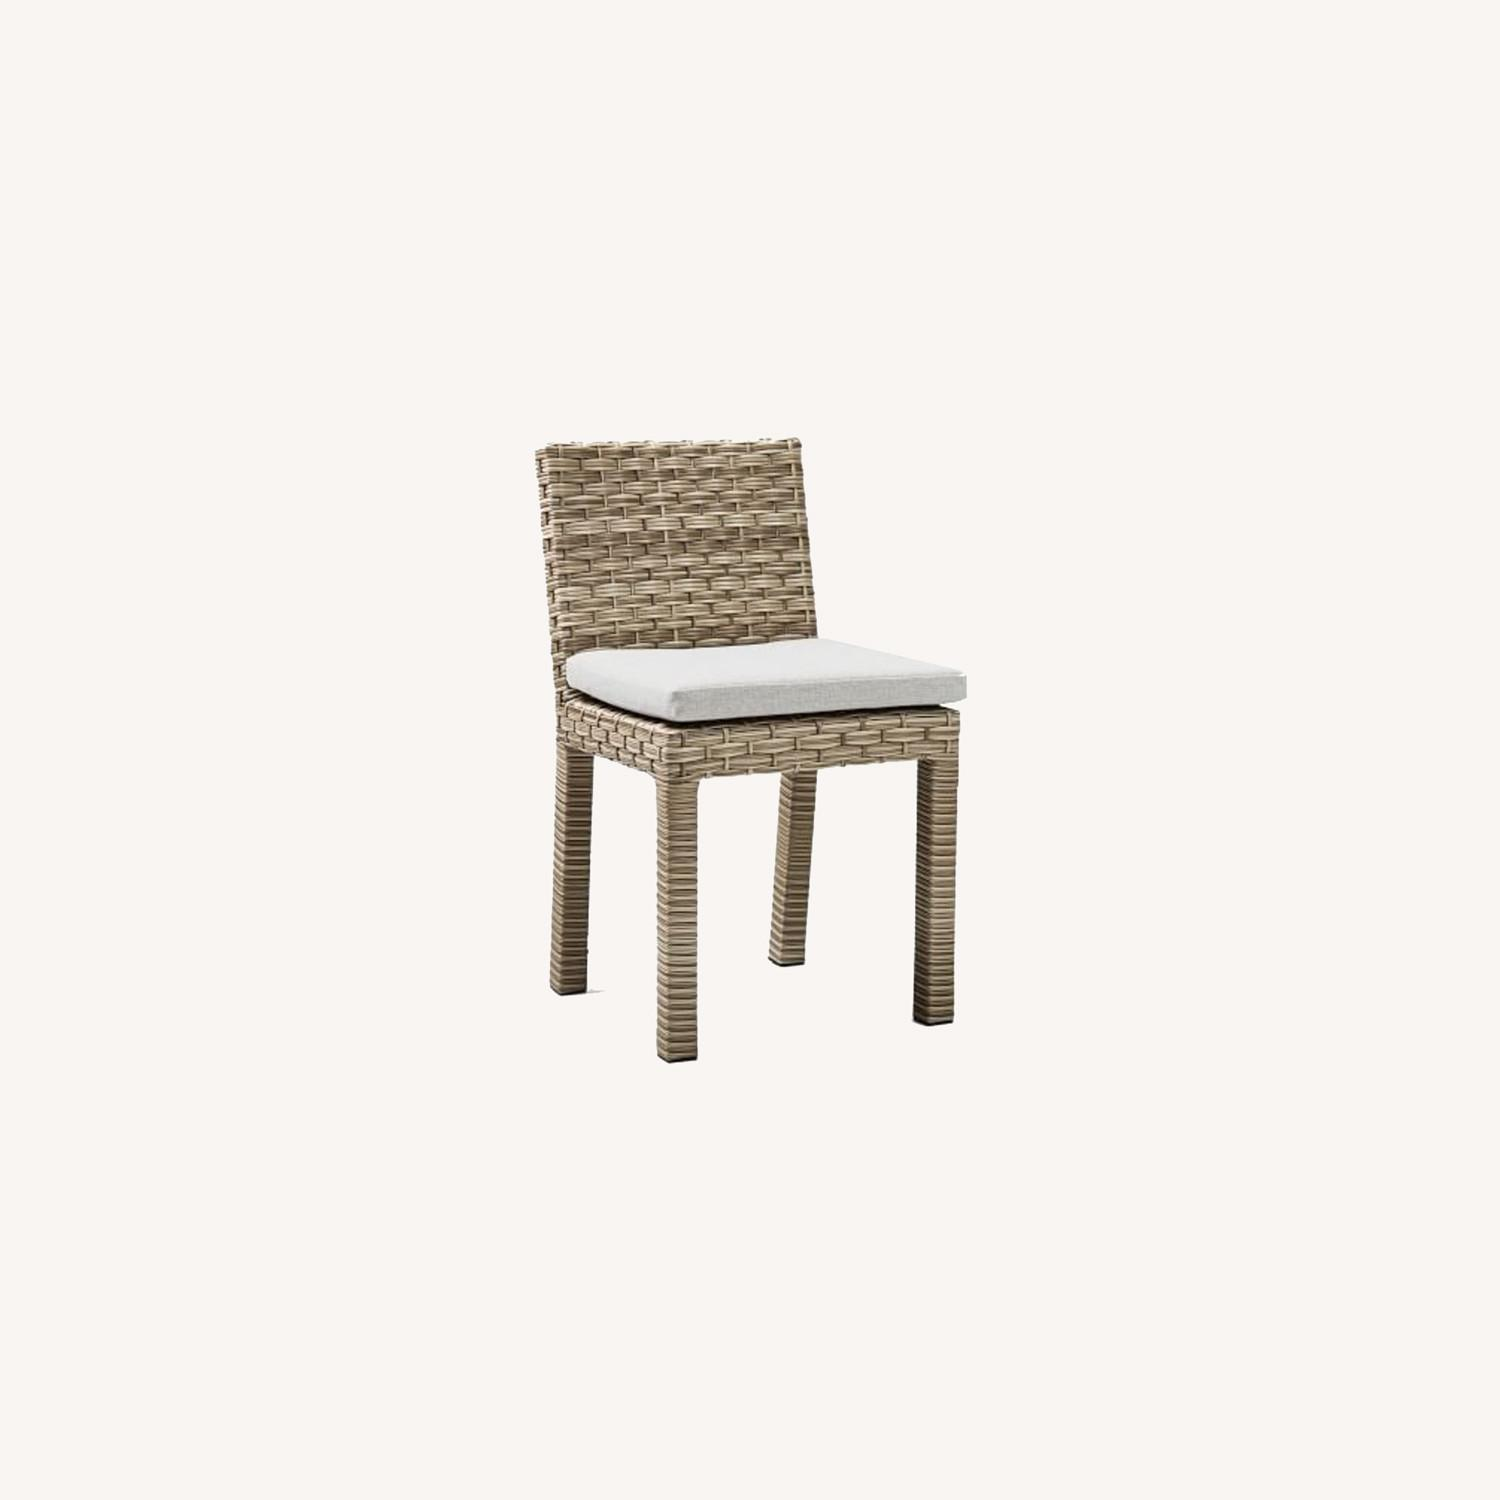 West Elm Urban Outdoor Dining Chair, Set of 2 - image-0